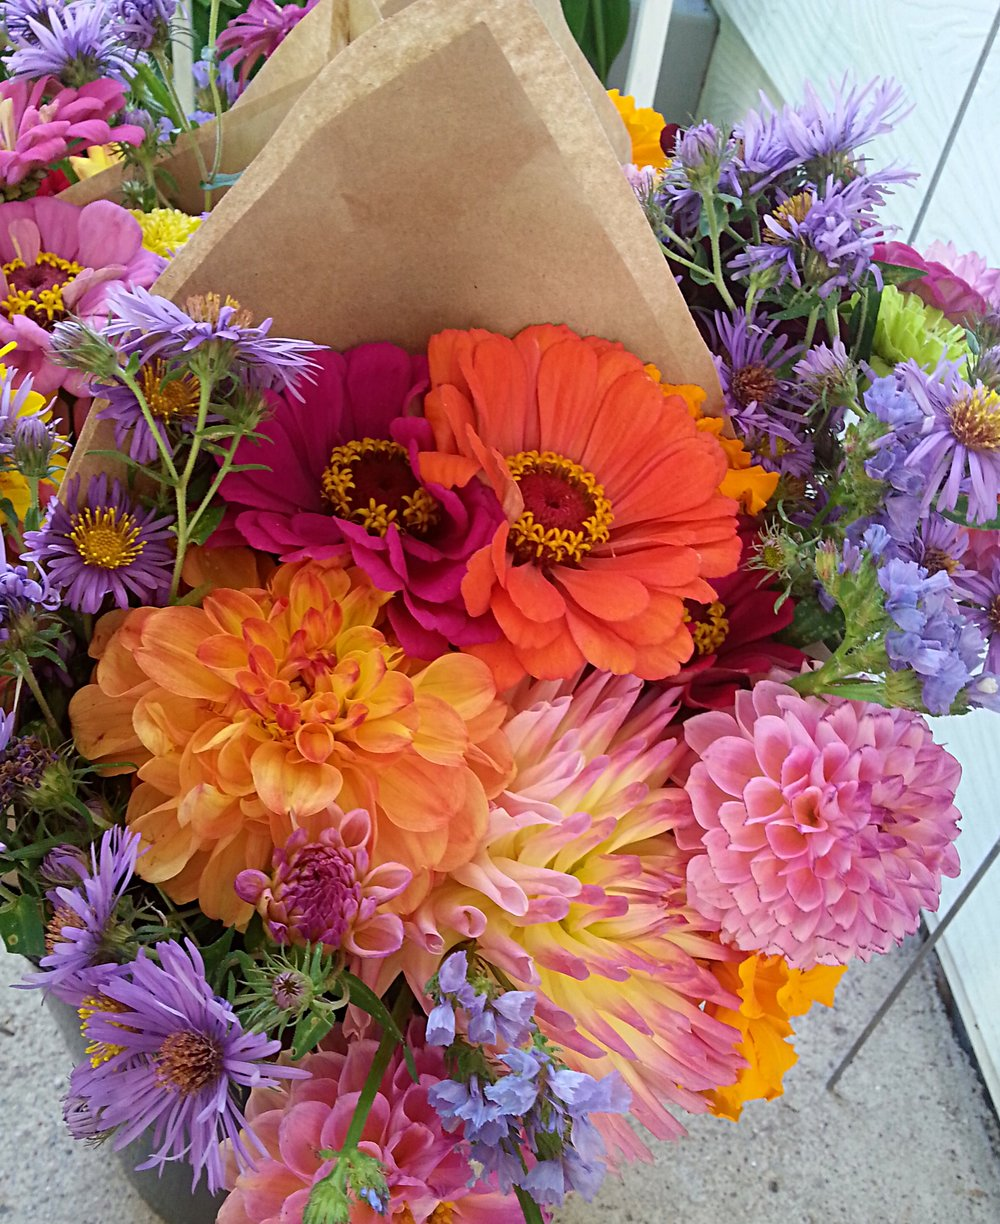 Zinnia, Dahlias, Marigolds, Asters, Statice